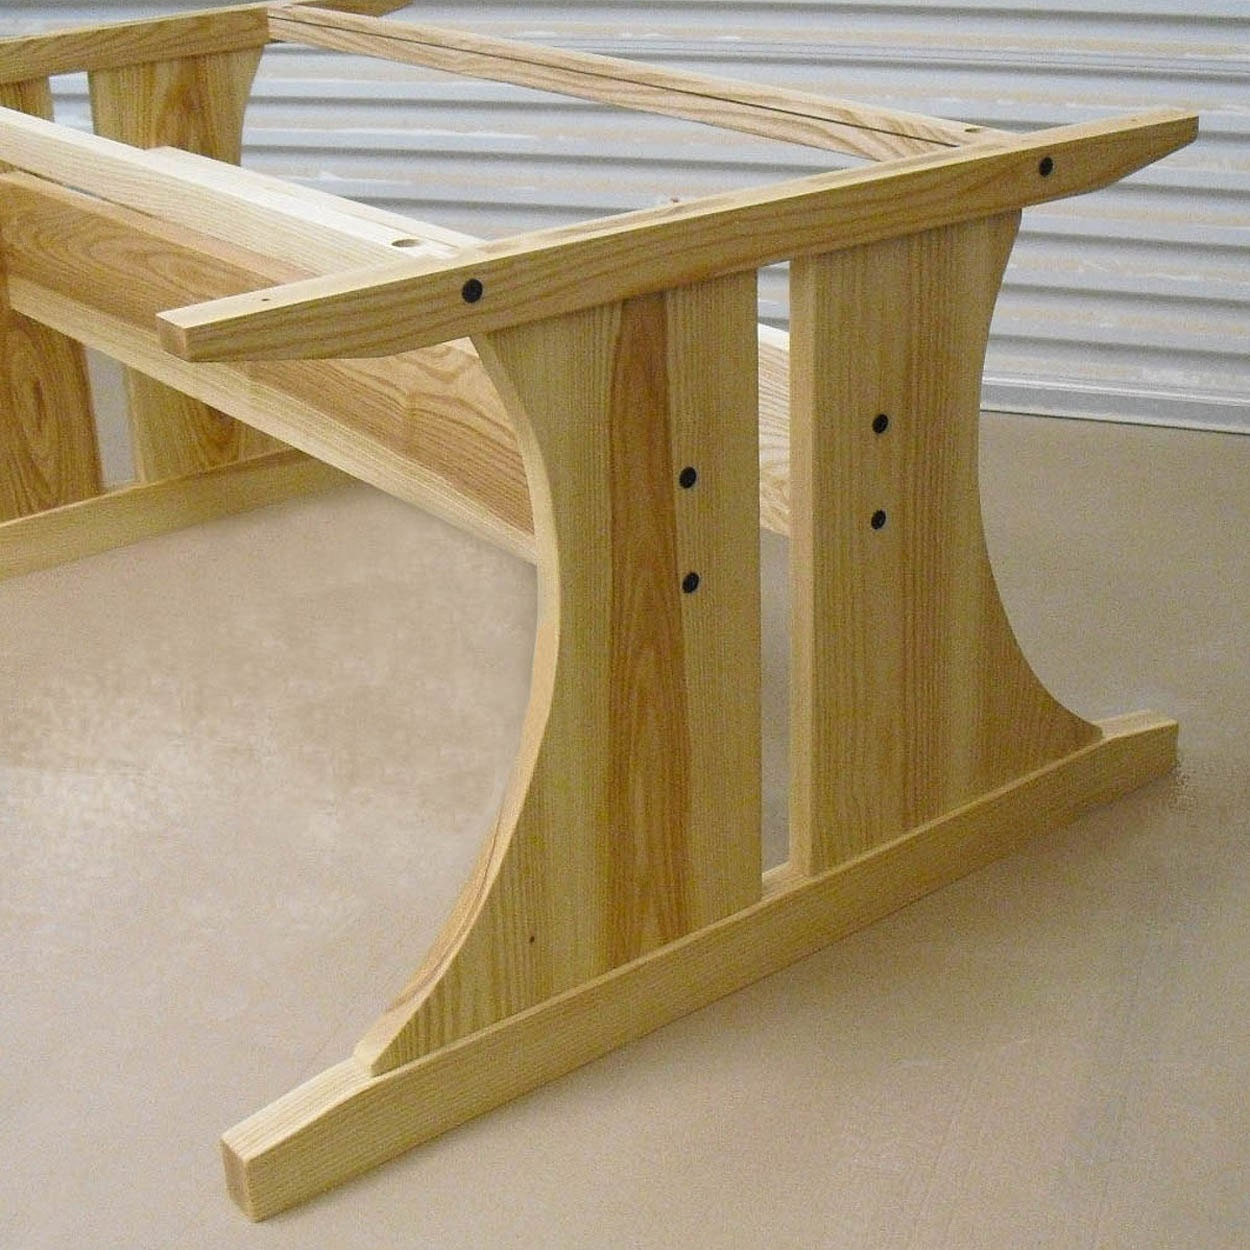 ash dining room trestle table base add your own top. Black Bedroom Furniture Sets. Home Design Ideas